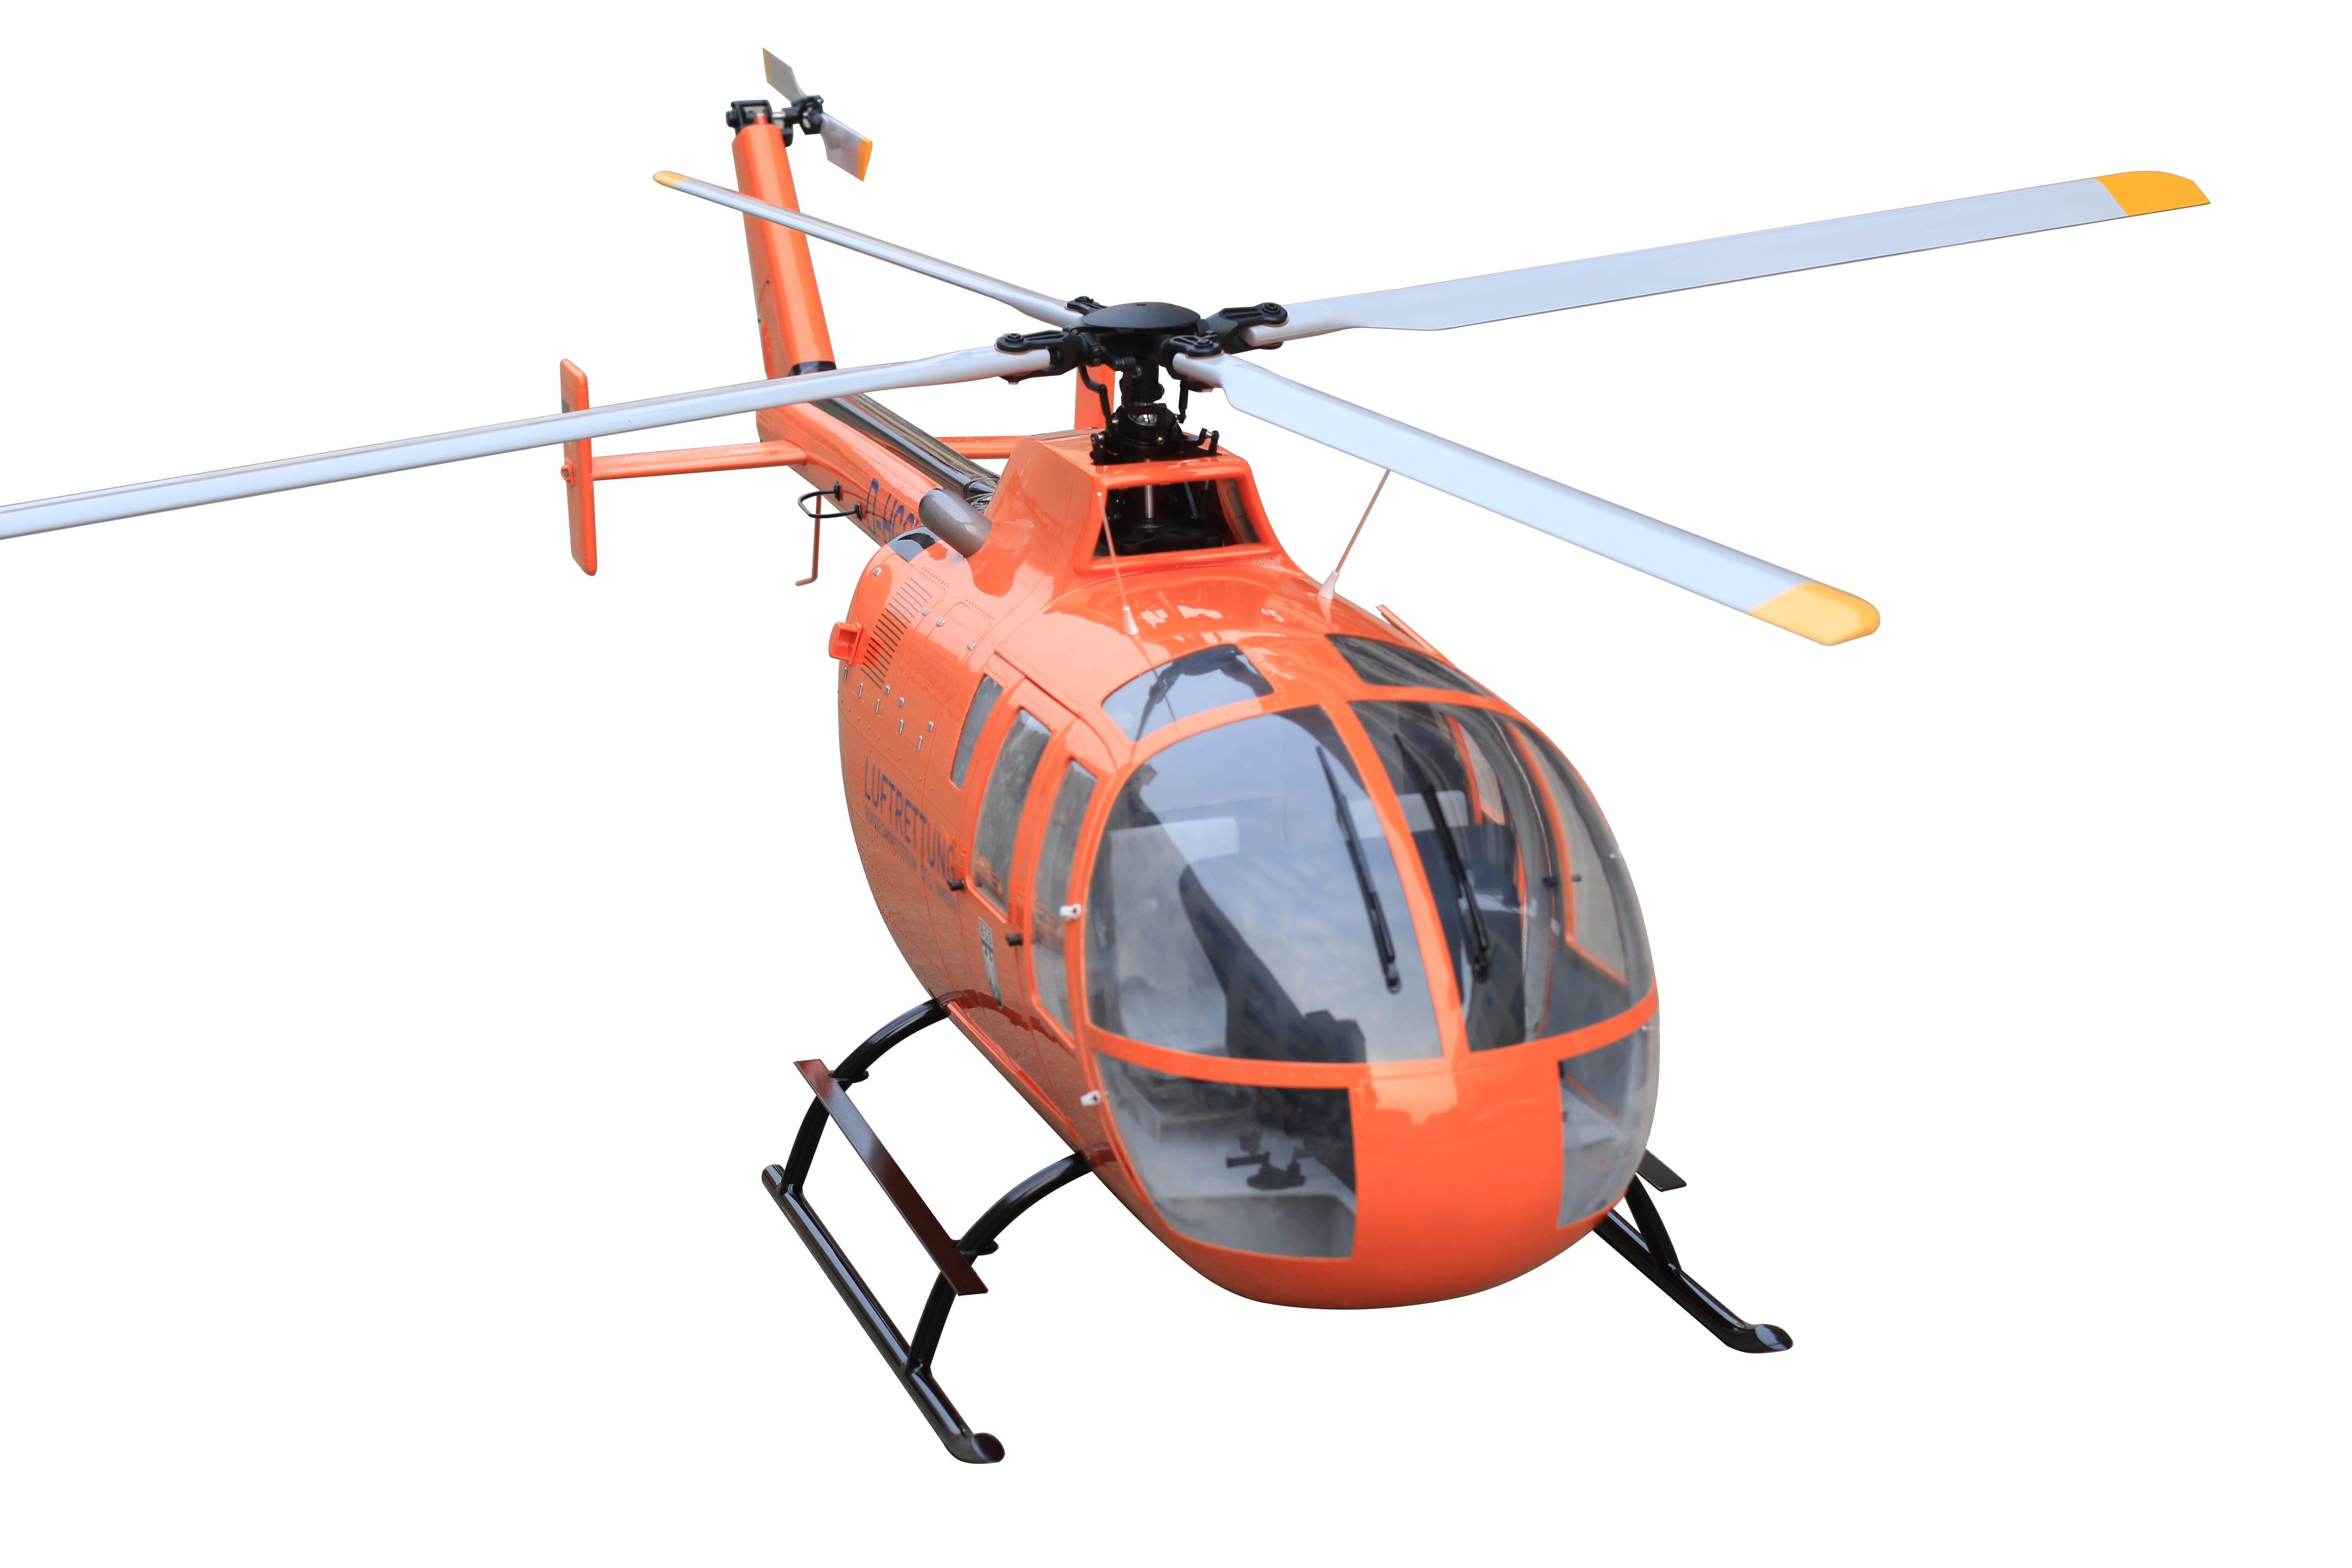 BO-105 Luftrettung Superscale 800